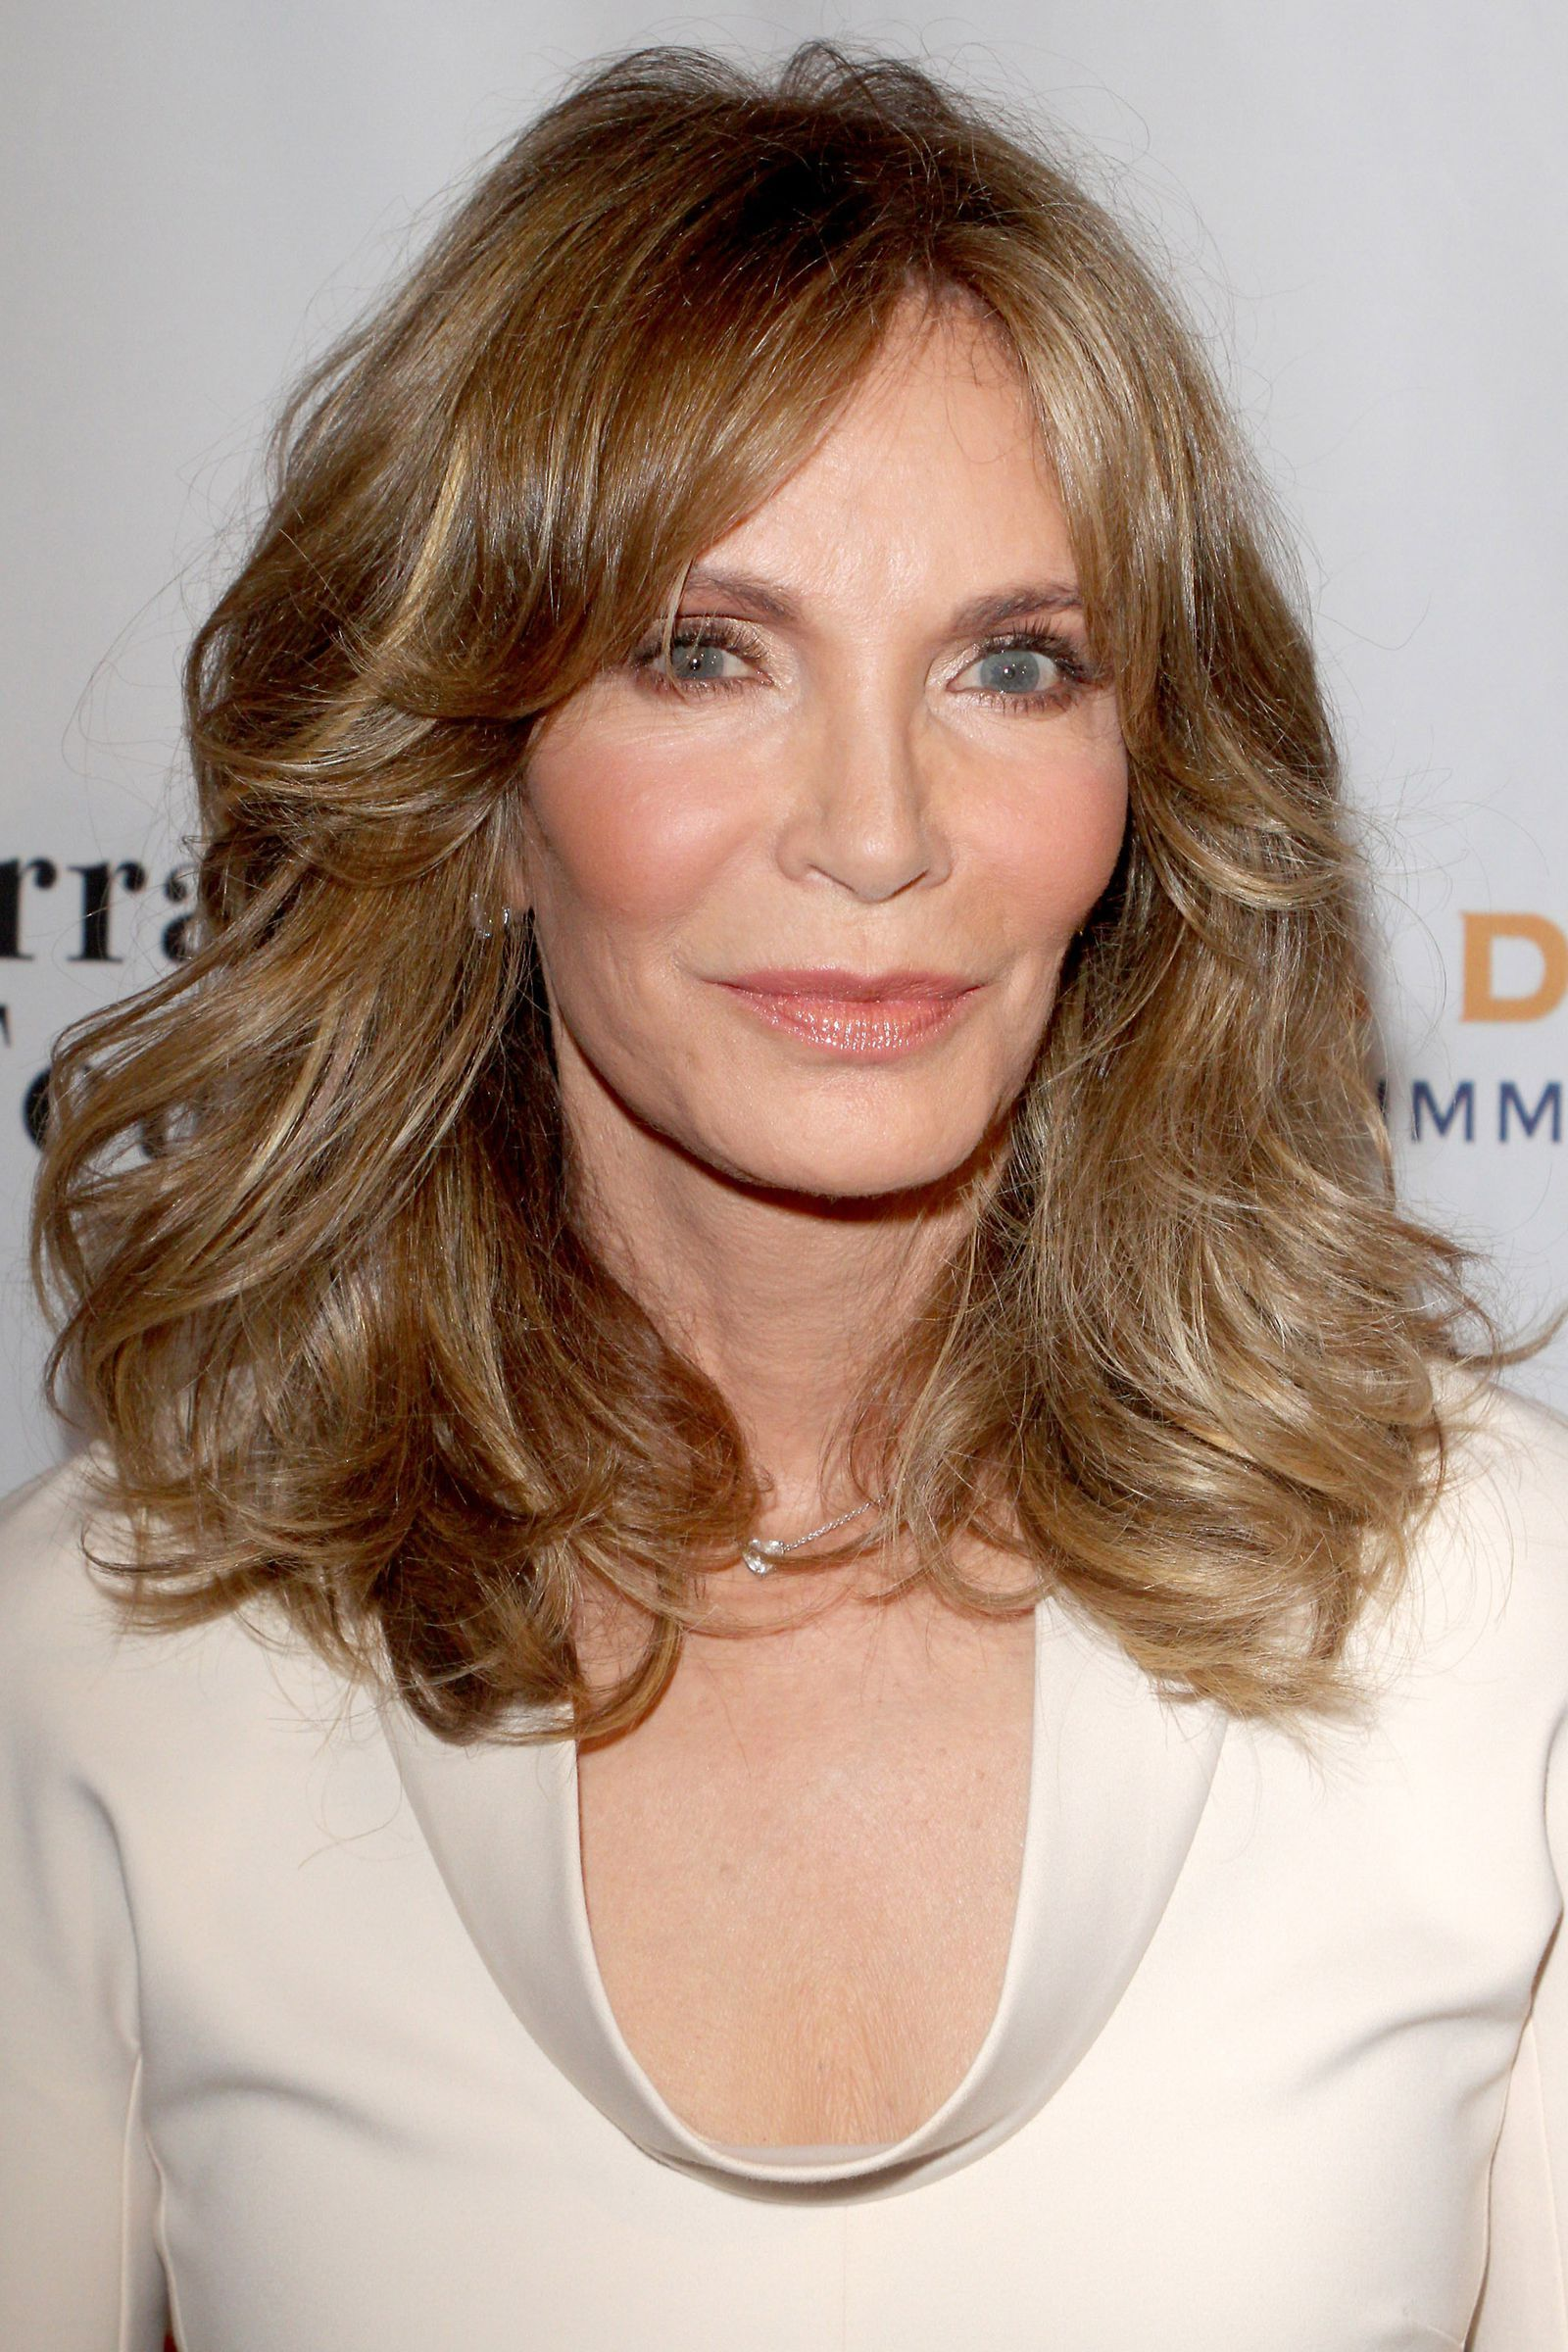 the 50 best hairstyles for women over 50 | hairstyles | long